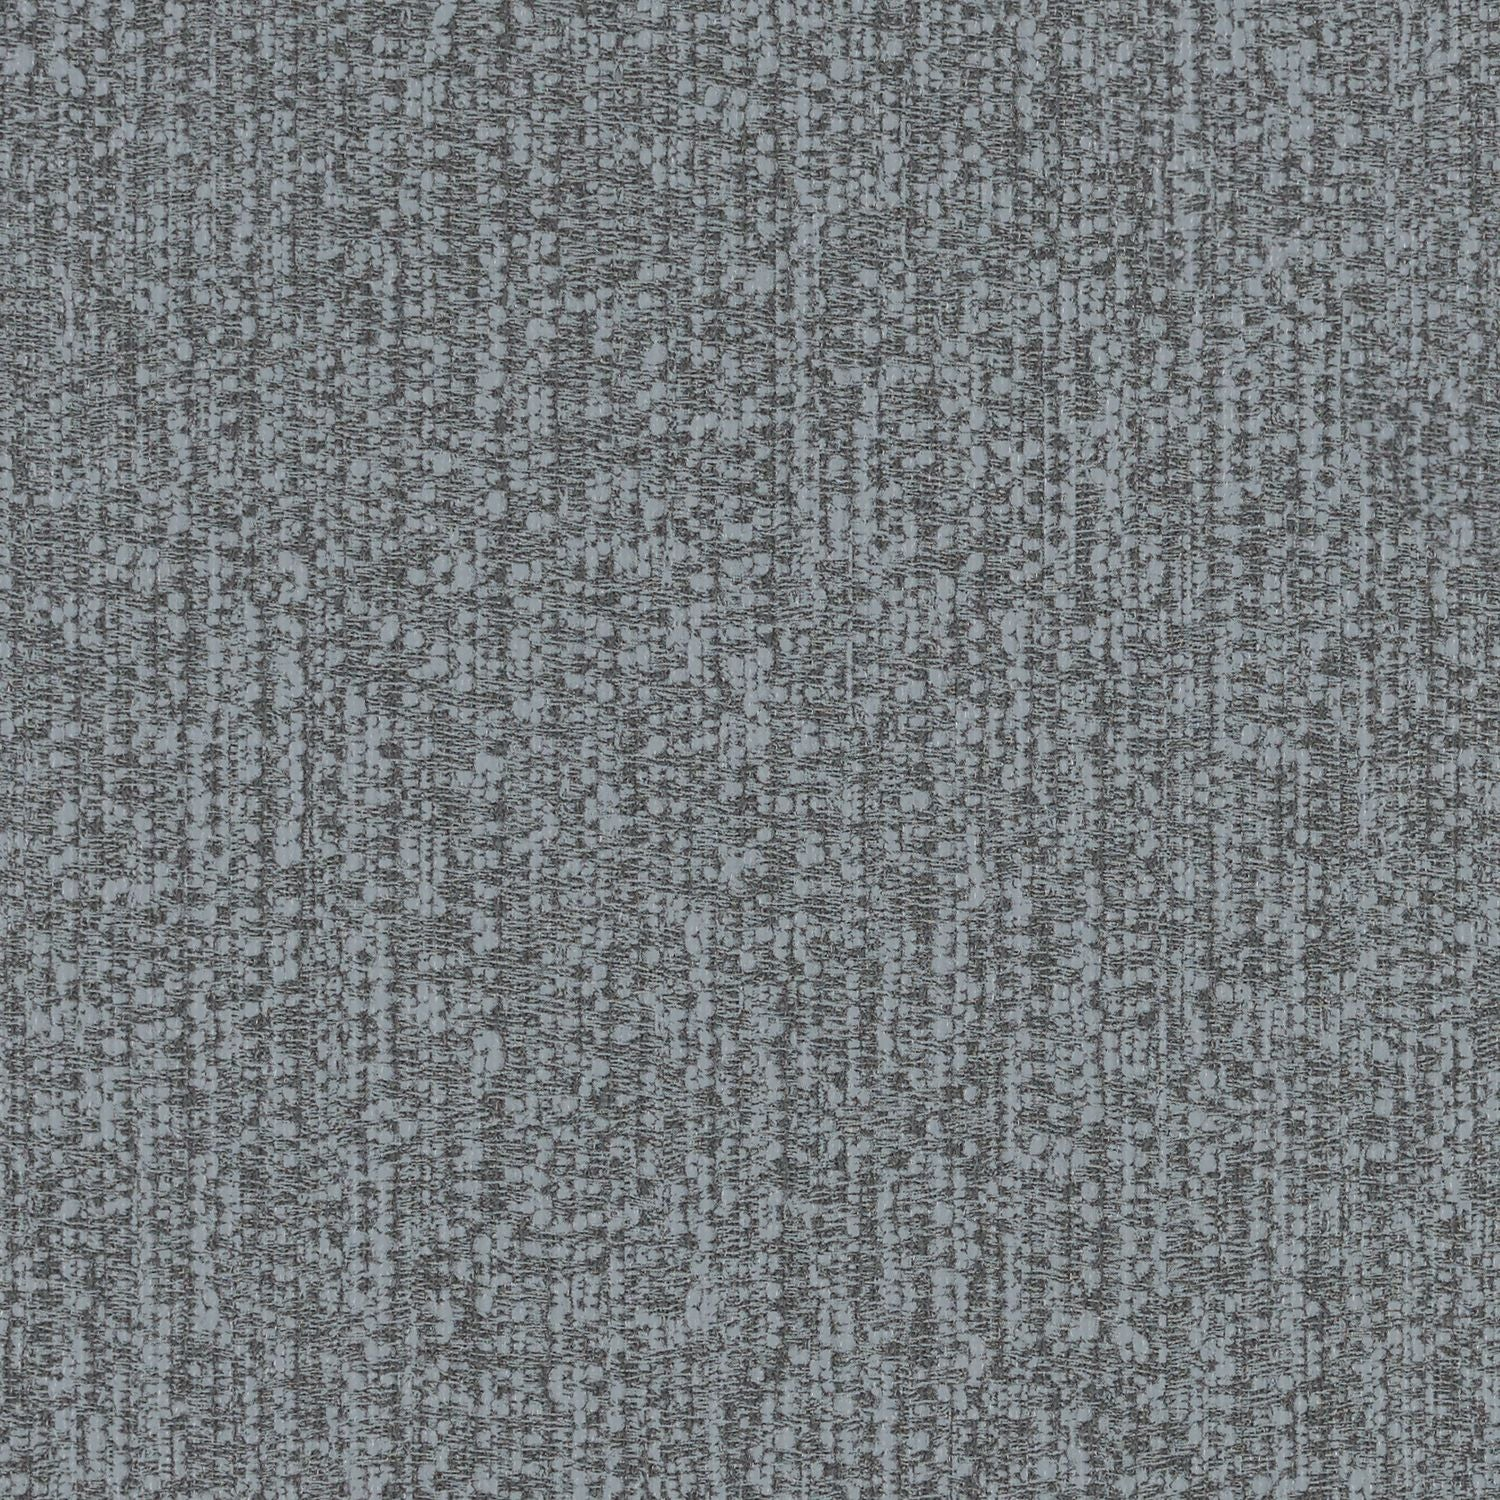 Monotex - Grey Marl - 4053 - 04